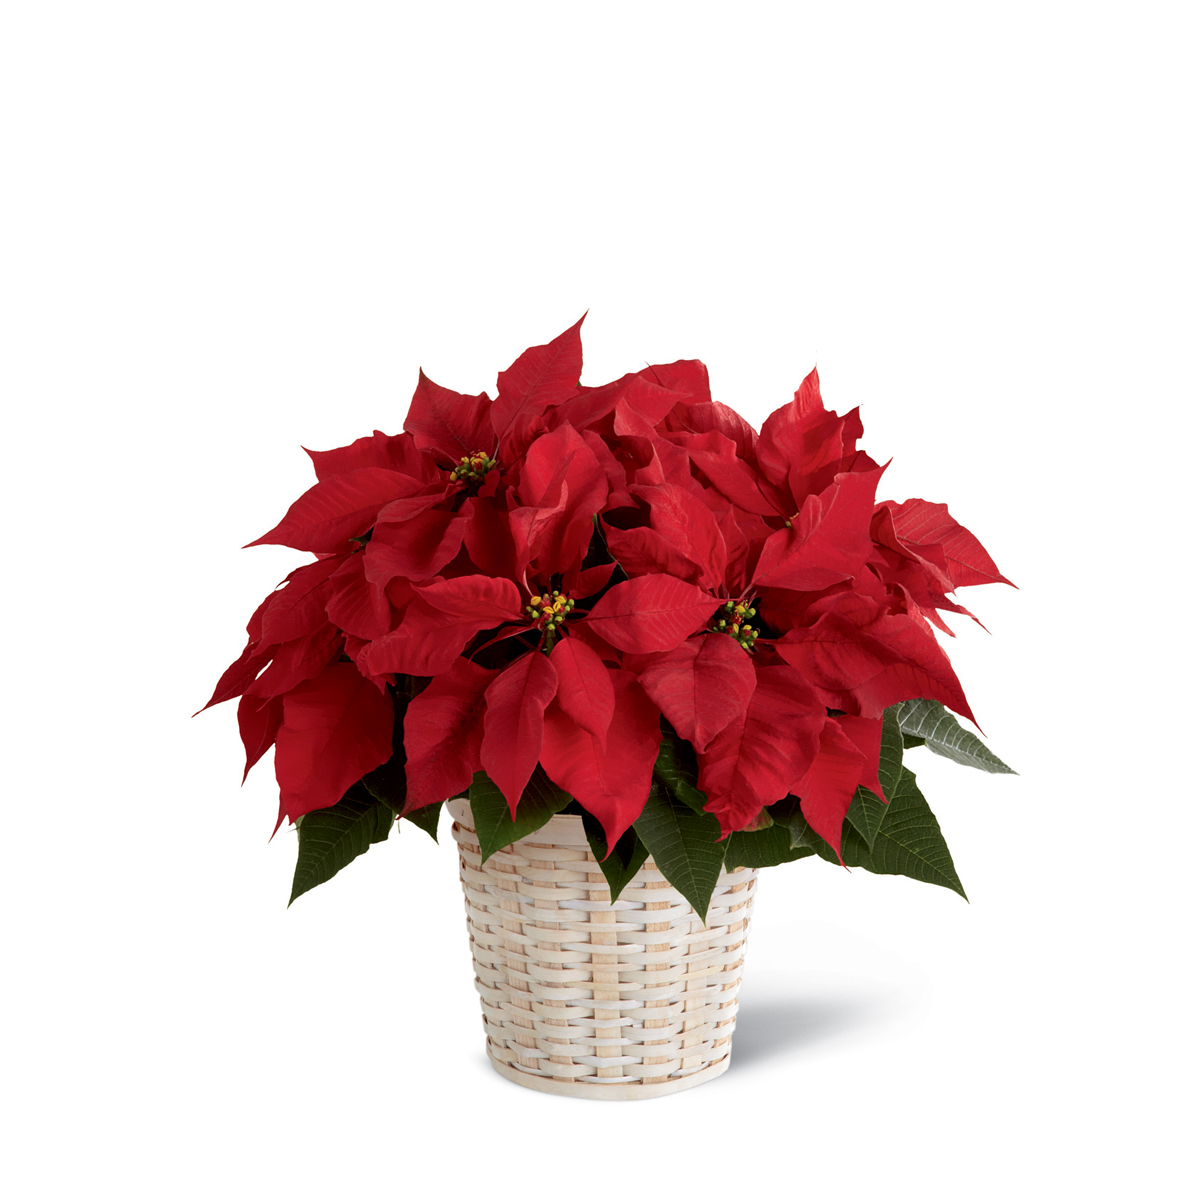 The Ftd Red Poinsettia Basket Small Tuscola Il Florist